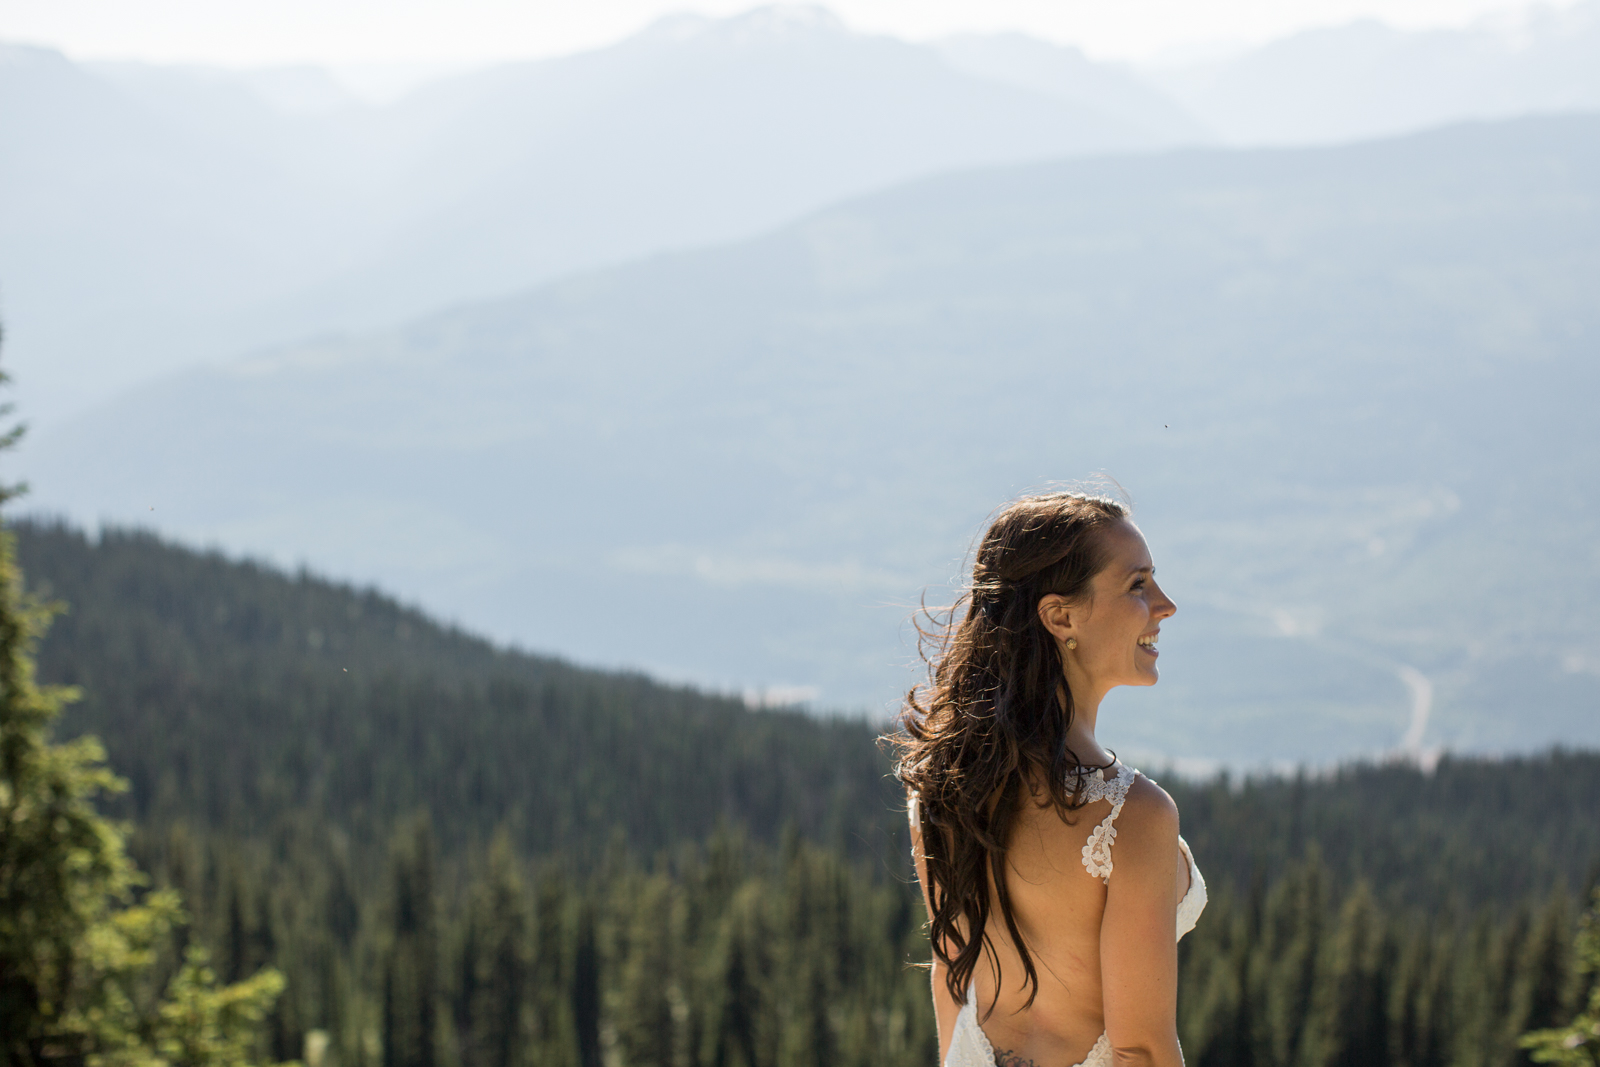 58Andrew_Pavlidis_Photography_Jess_and_Tristan_Revelstoke_Elopement_Calgary_Wedding_Photographer-8858